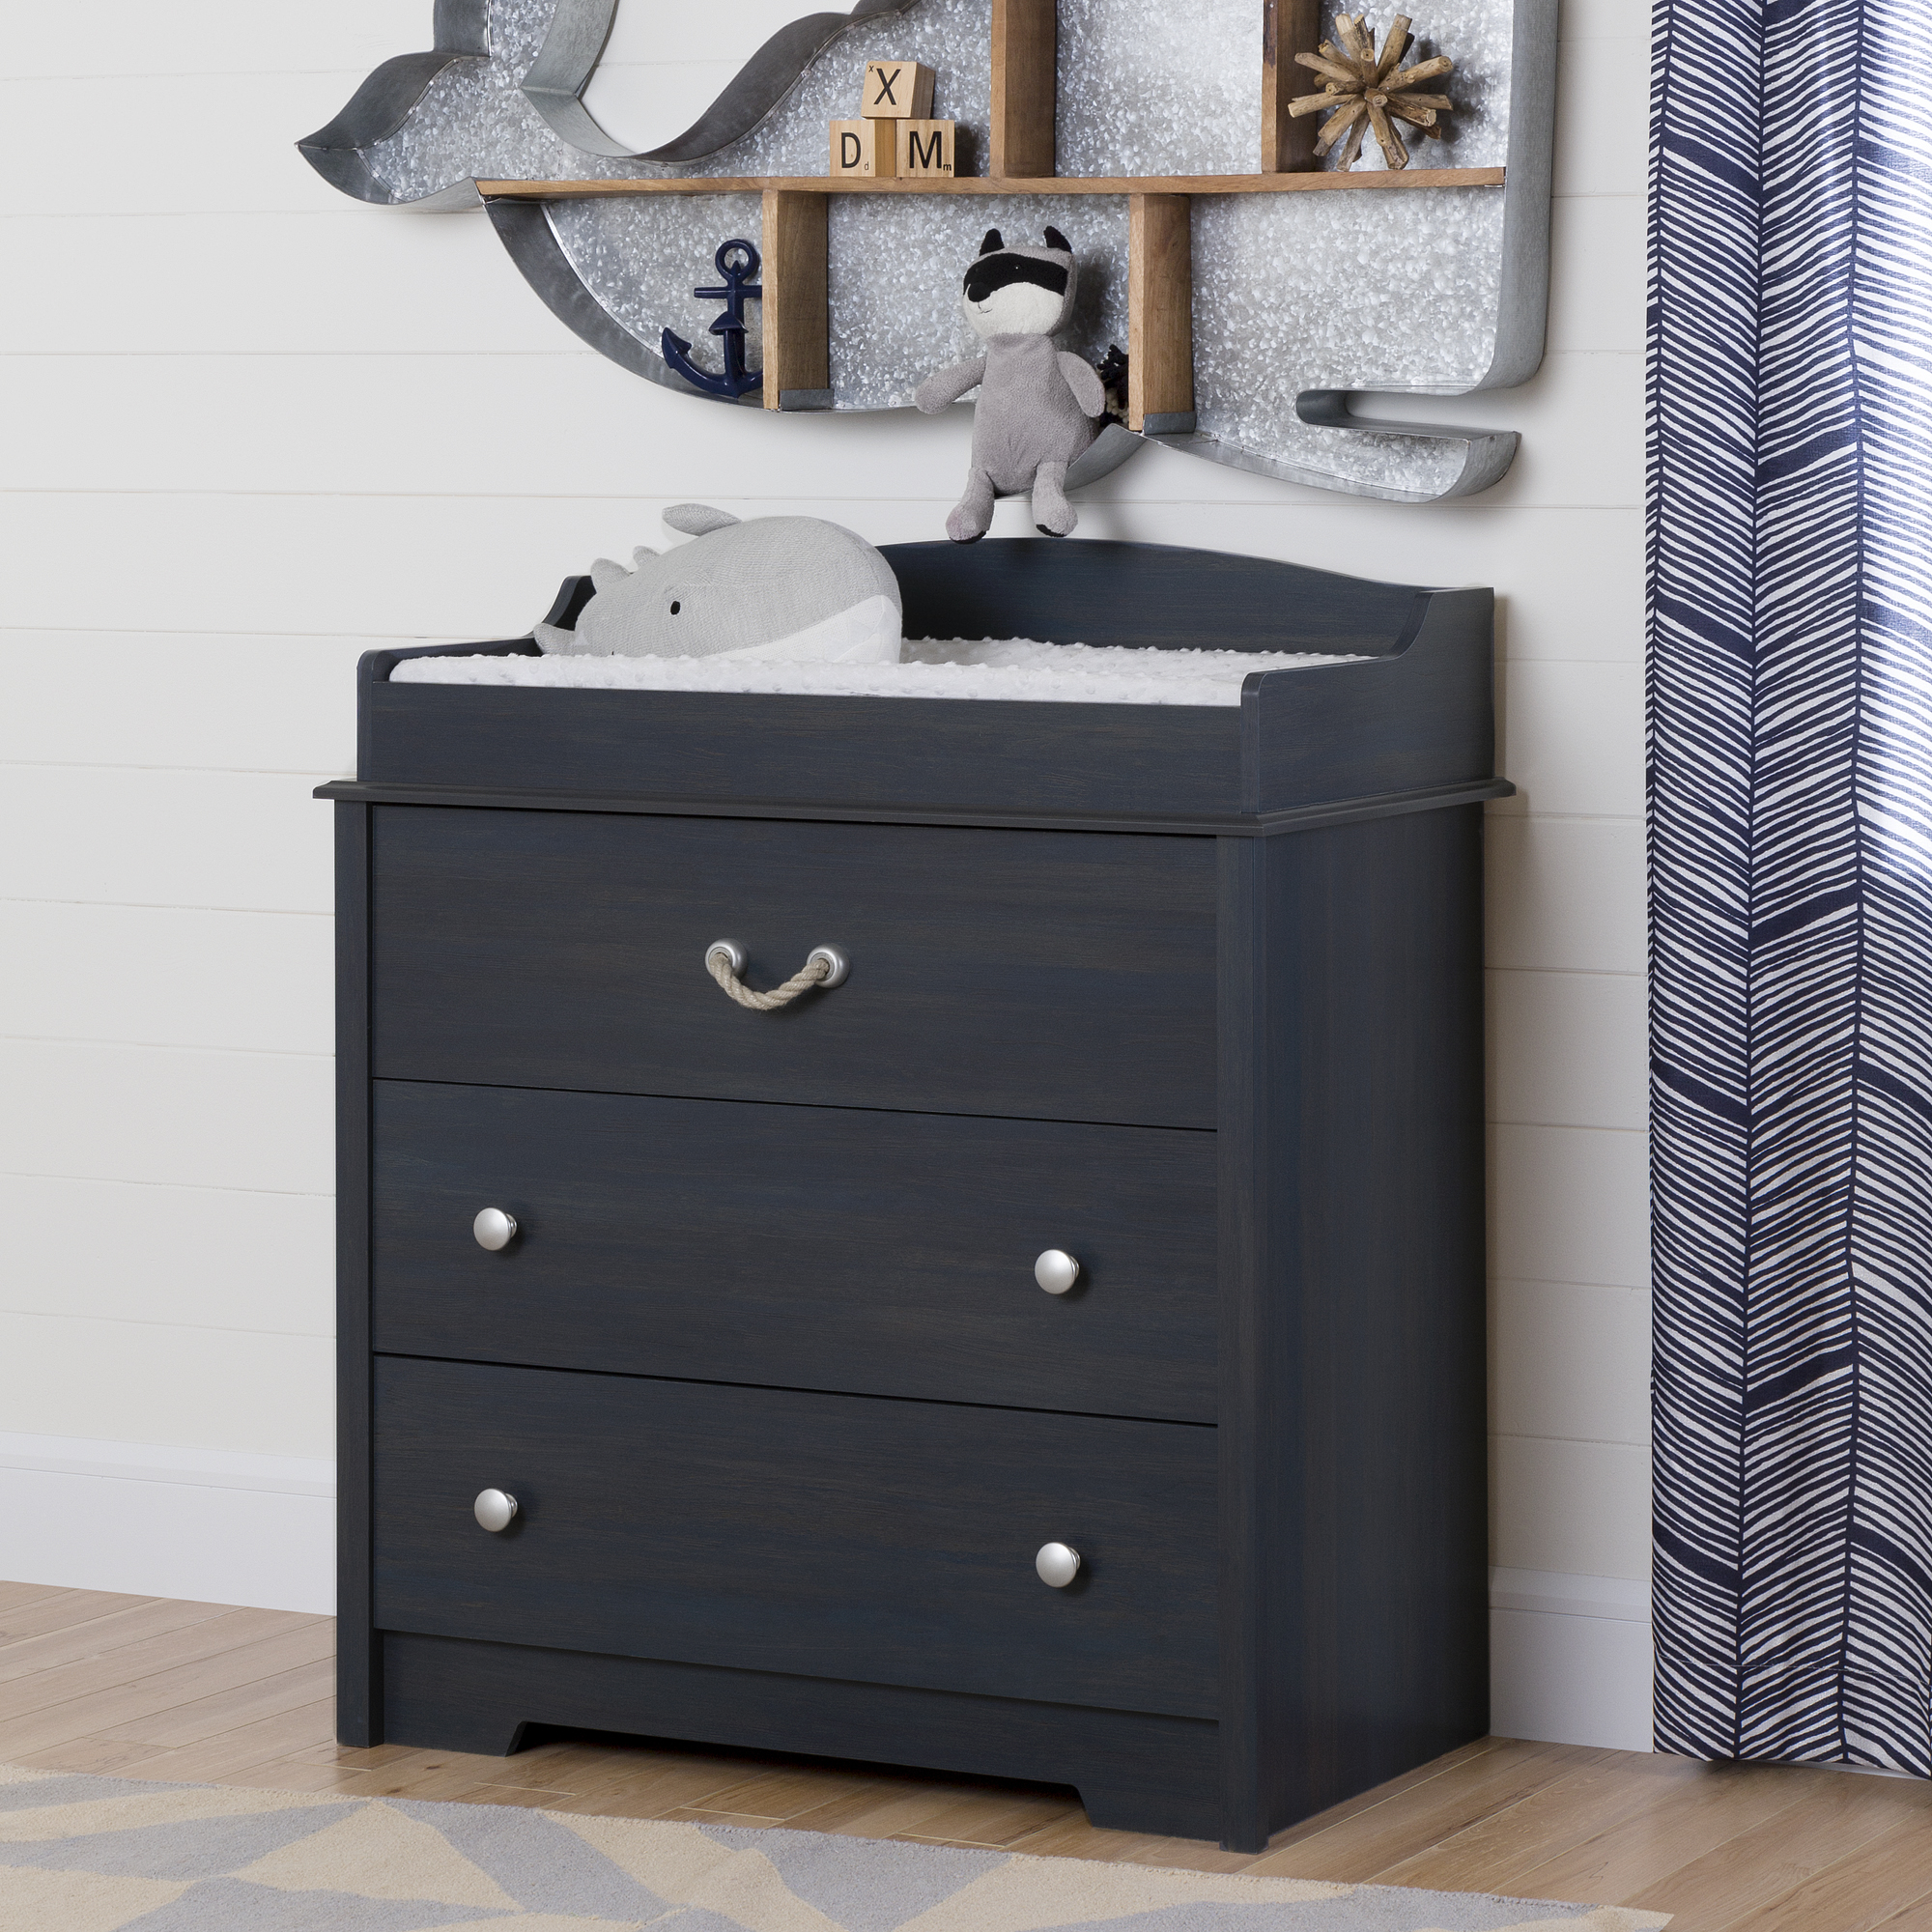 Changing Table Chest Of Drawers South Shore South Shore Aviron Changing Table With Drawers Blueberry